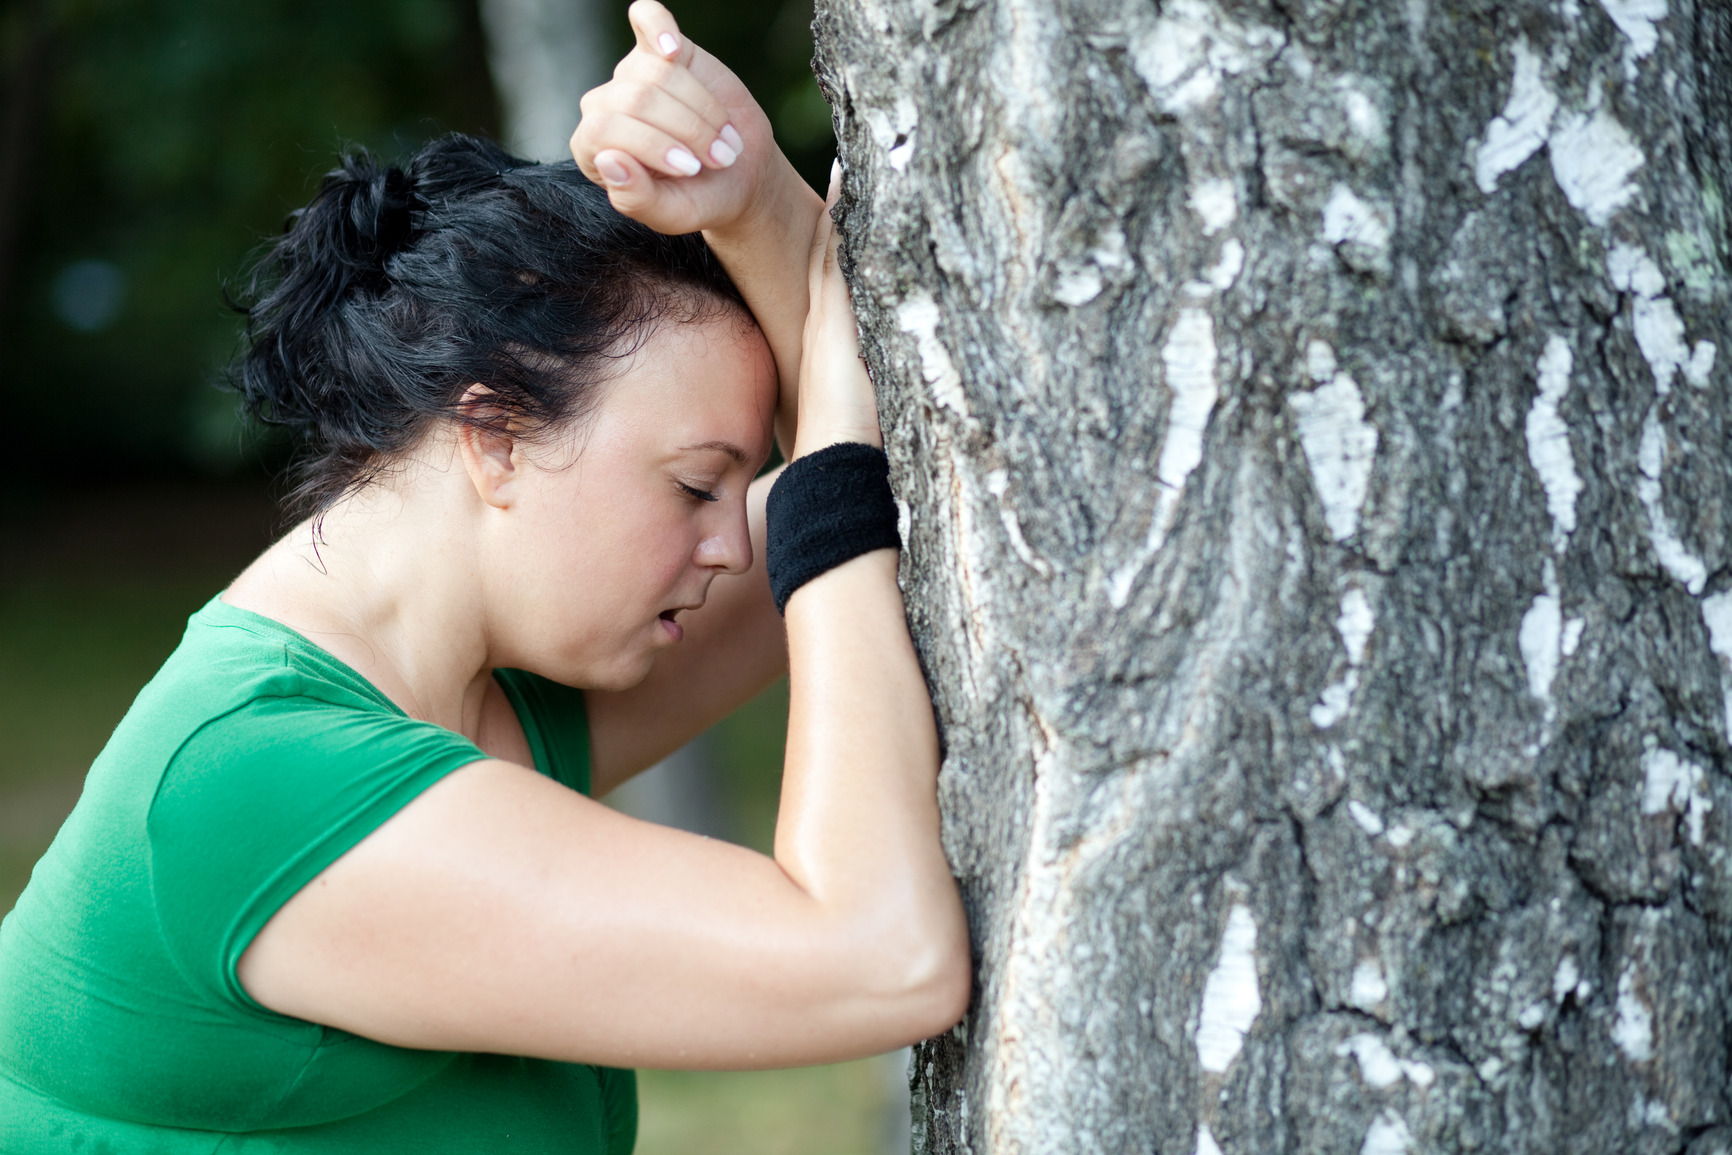 photodune-1483578-sweaty-overweight-woman-catching-her-breath-after-a-long-run-shallow-dof-m